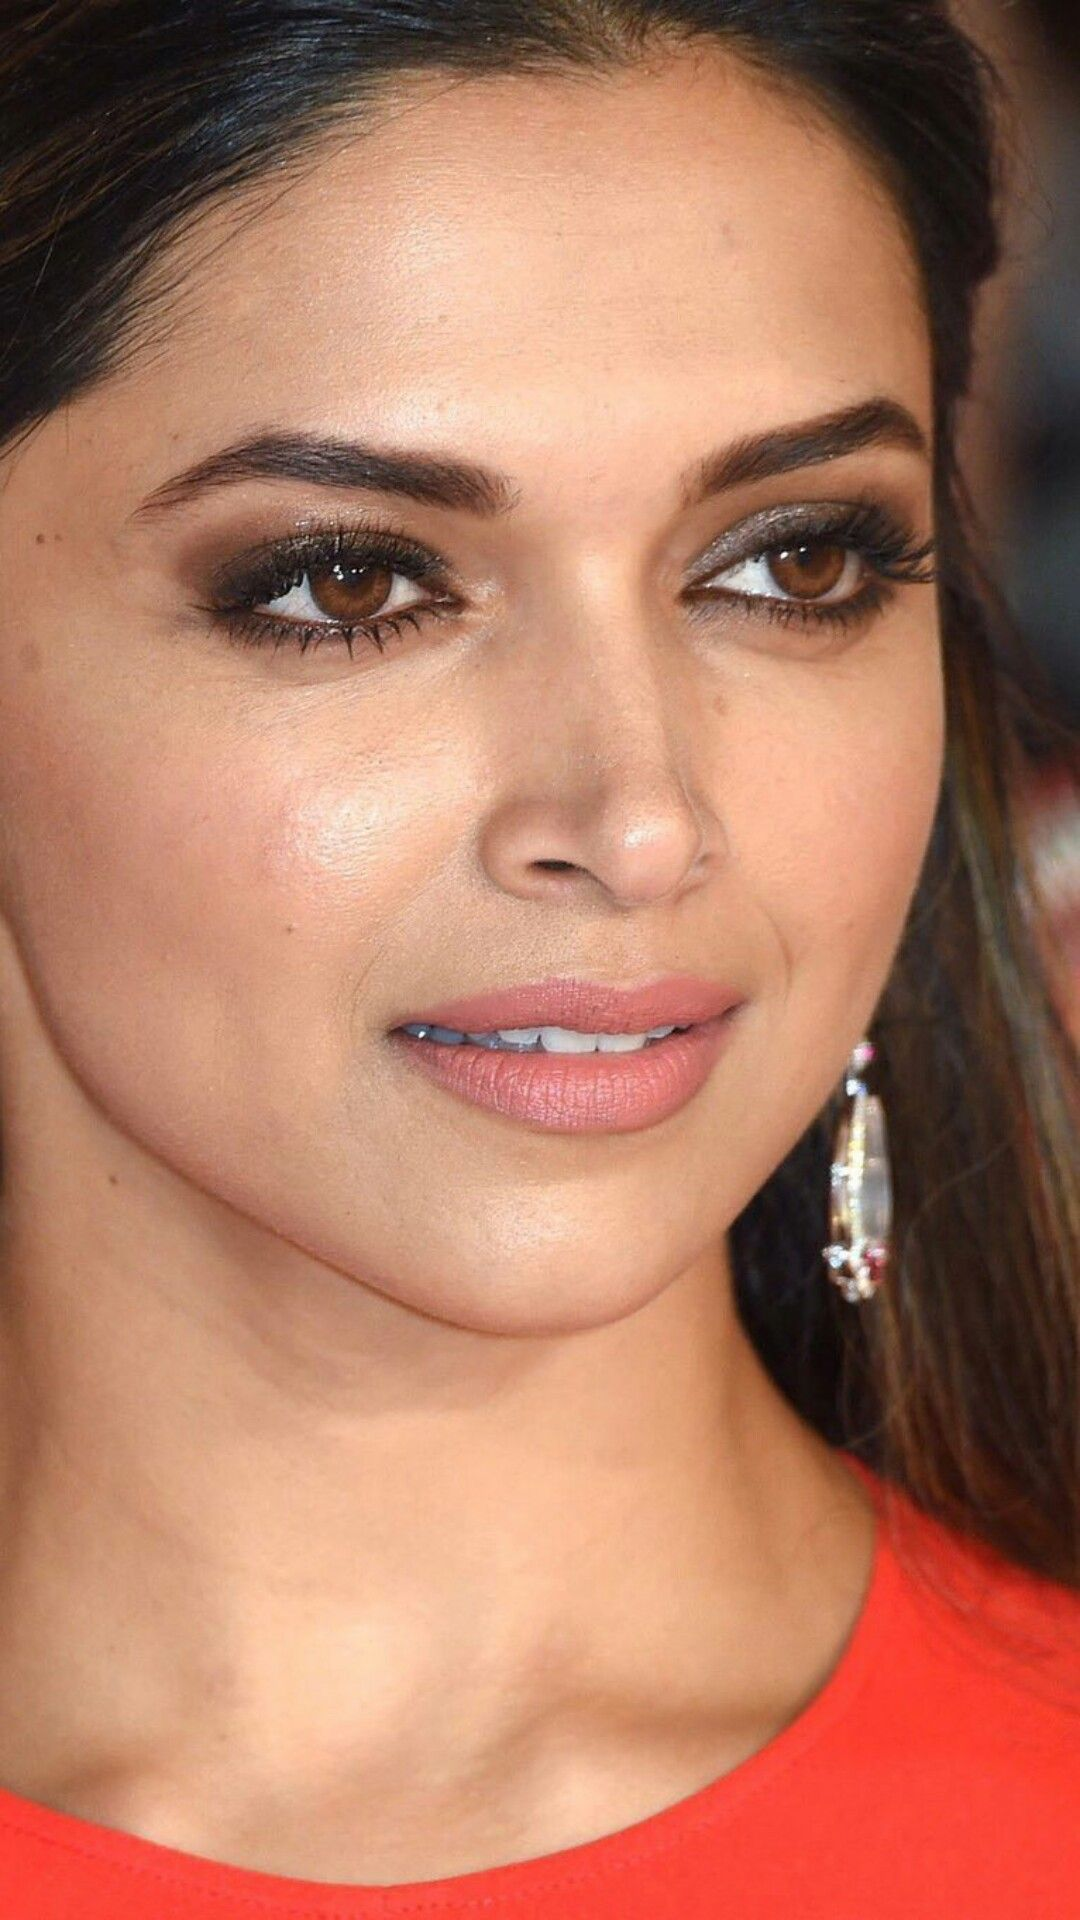 Deepika appears to be deep in thought... eyes glisten like ...